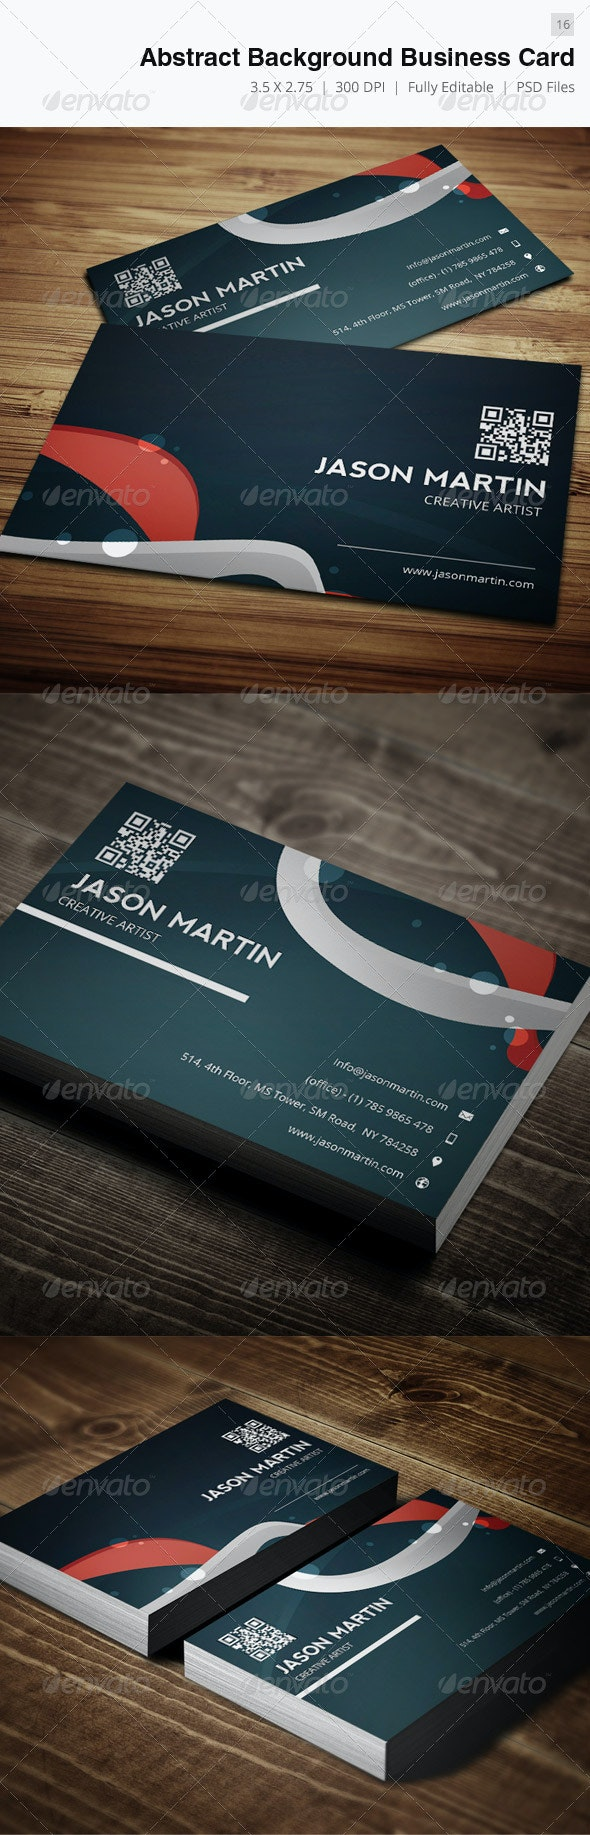 Abstract Background Creative Business Card - 16 - Creative Business Cards